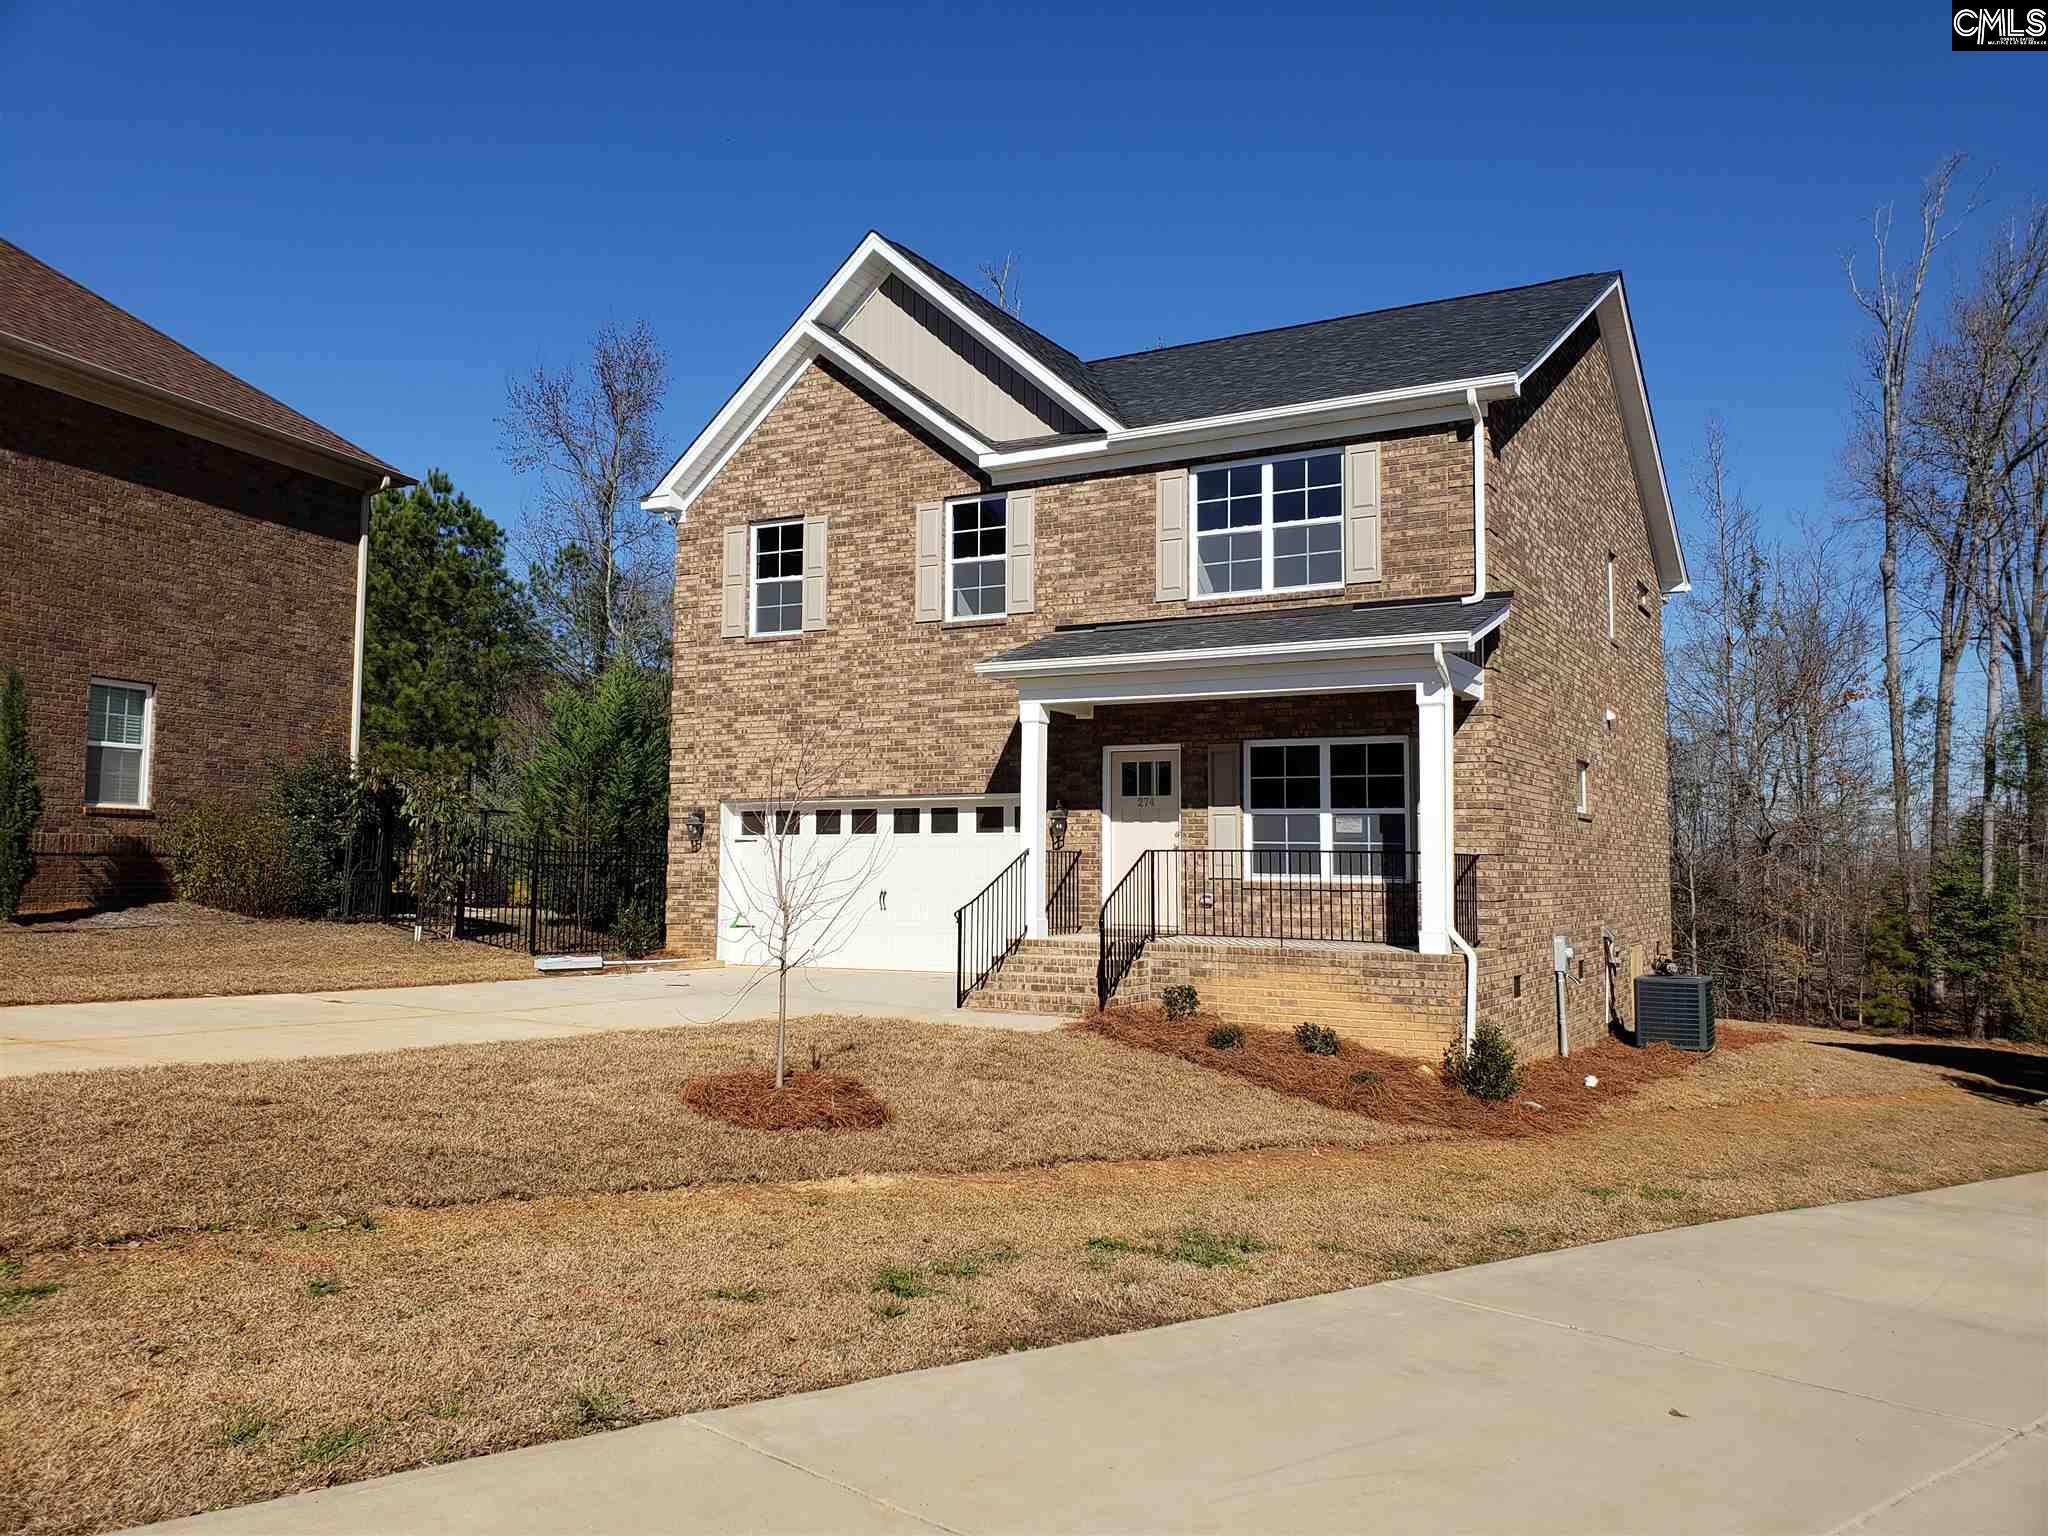 274 Woodmill #19 Lexington, SC 29072